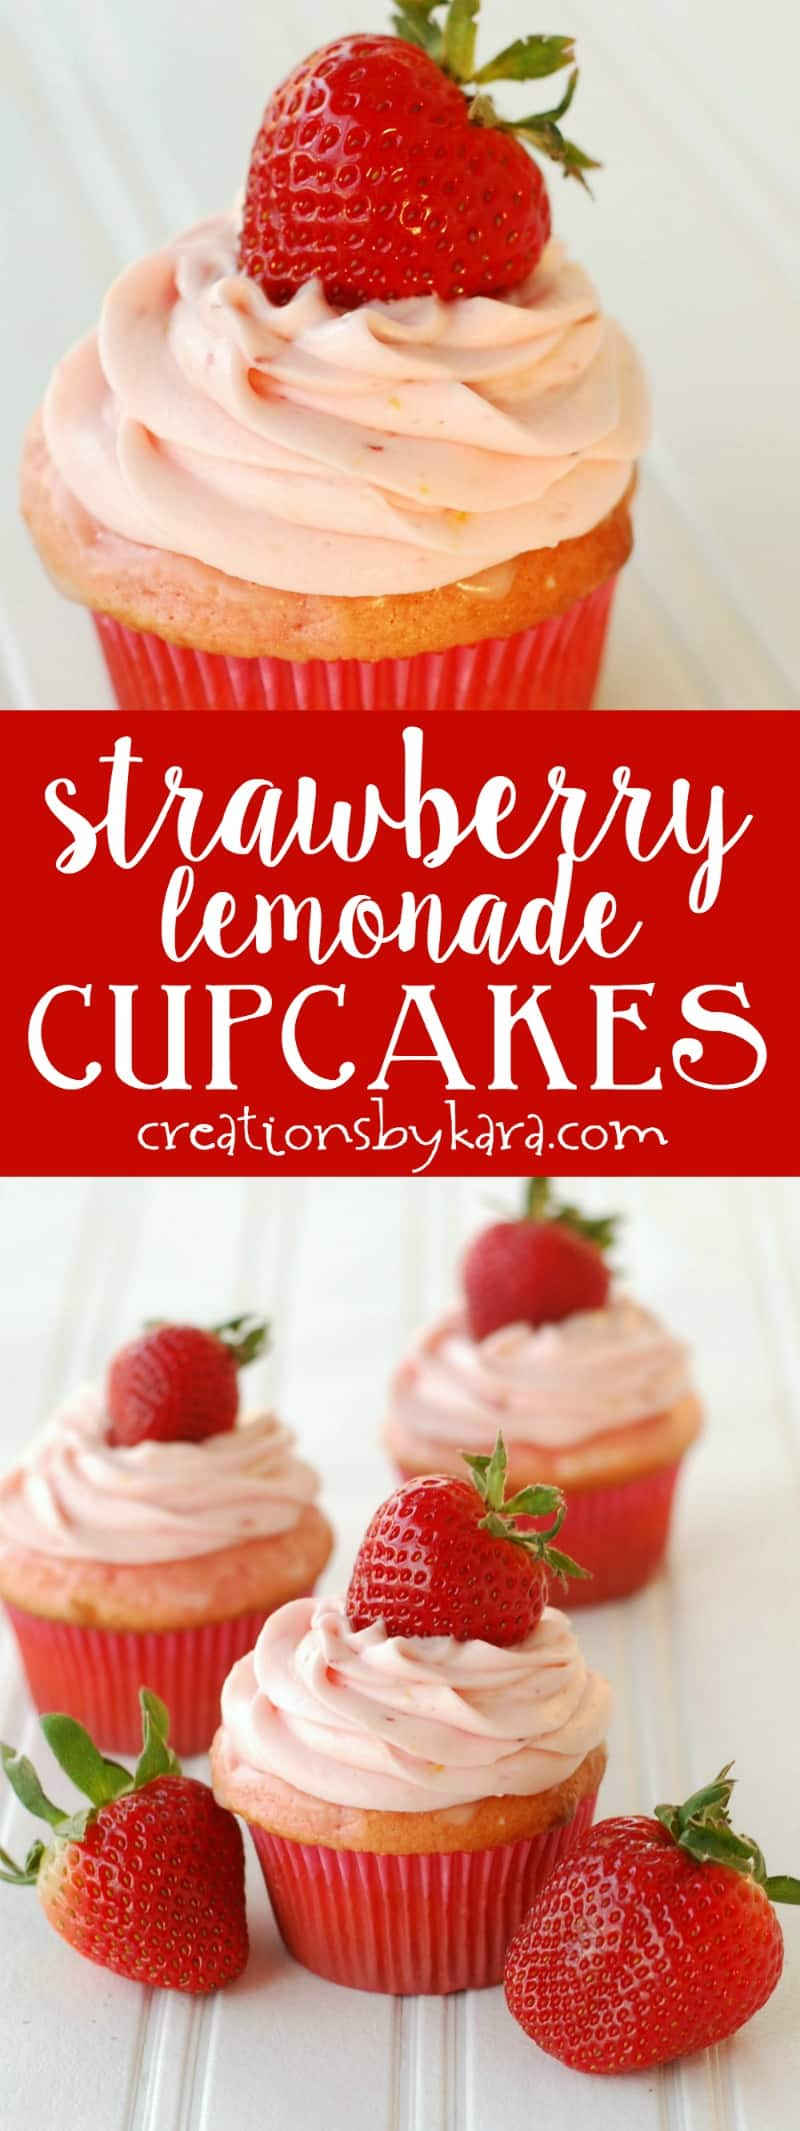 Strawberry Lemonade Cupcakes with strawberry cream cheese frosting. Some of the tastiest cupcakes ever! #strawberrylemonade #cupcakerecipe